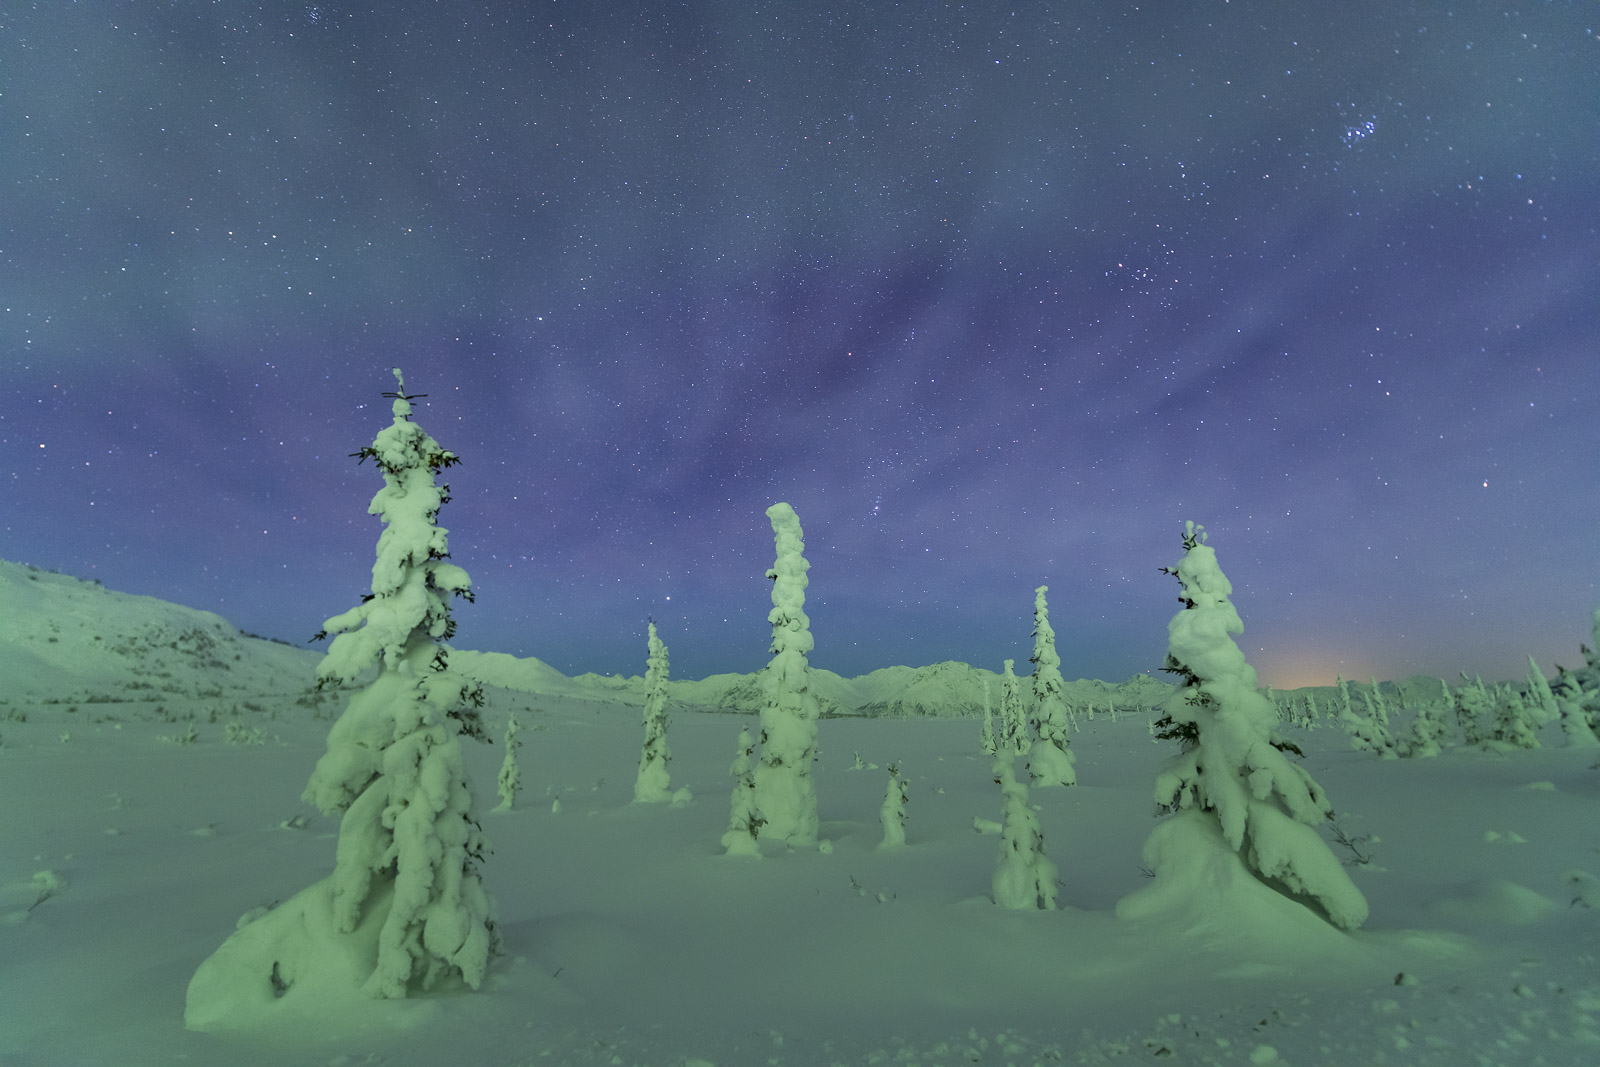 While the northern lights were dancing behind me, I really wanted to photograph this cluster of trees that were thick with frost...